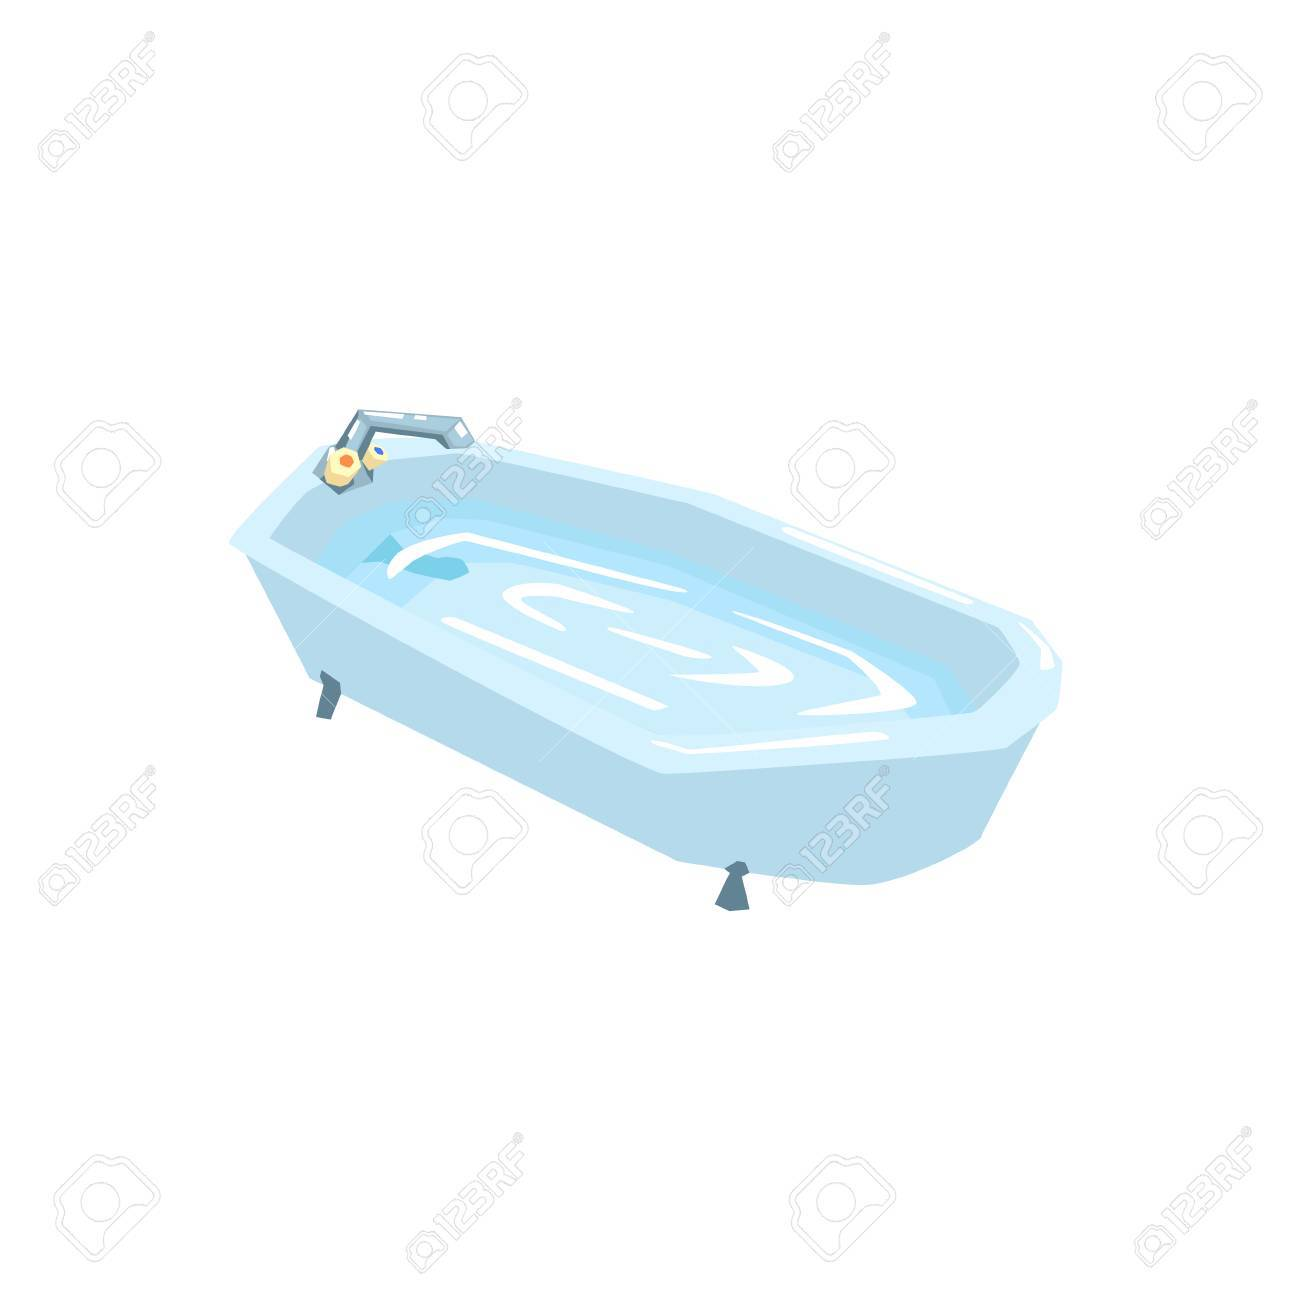 Bath Tub Filled With Water Cool Colorful Vector Illustration ...